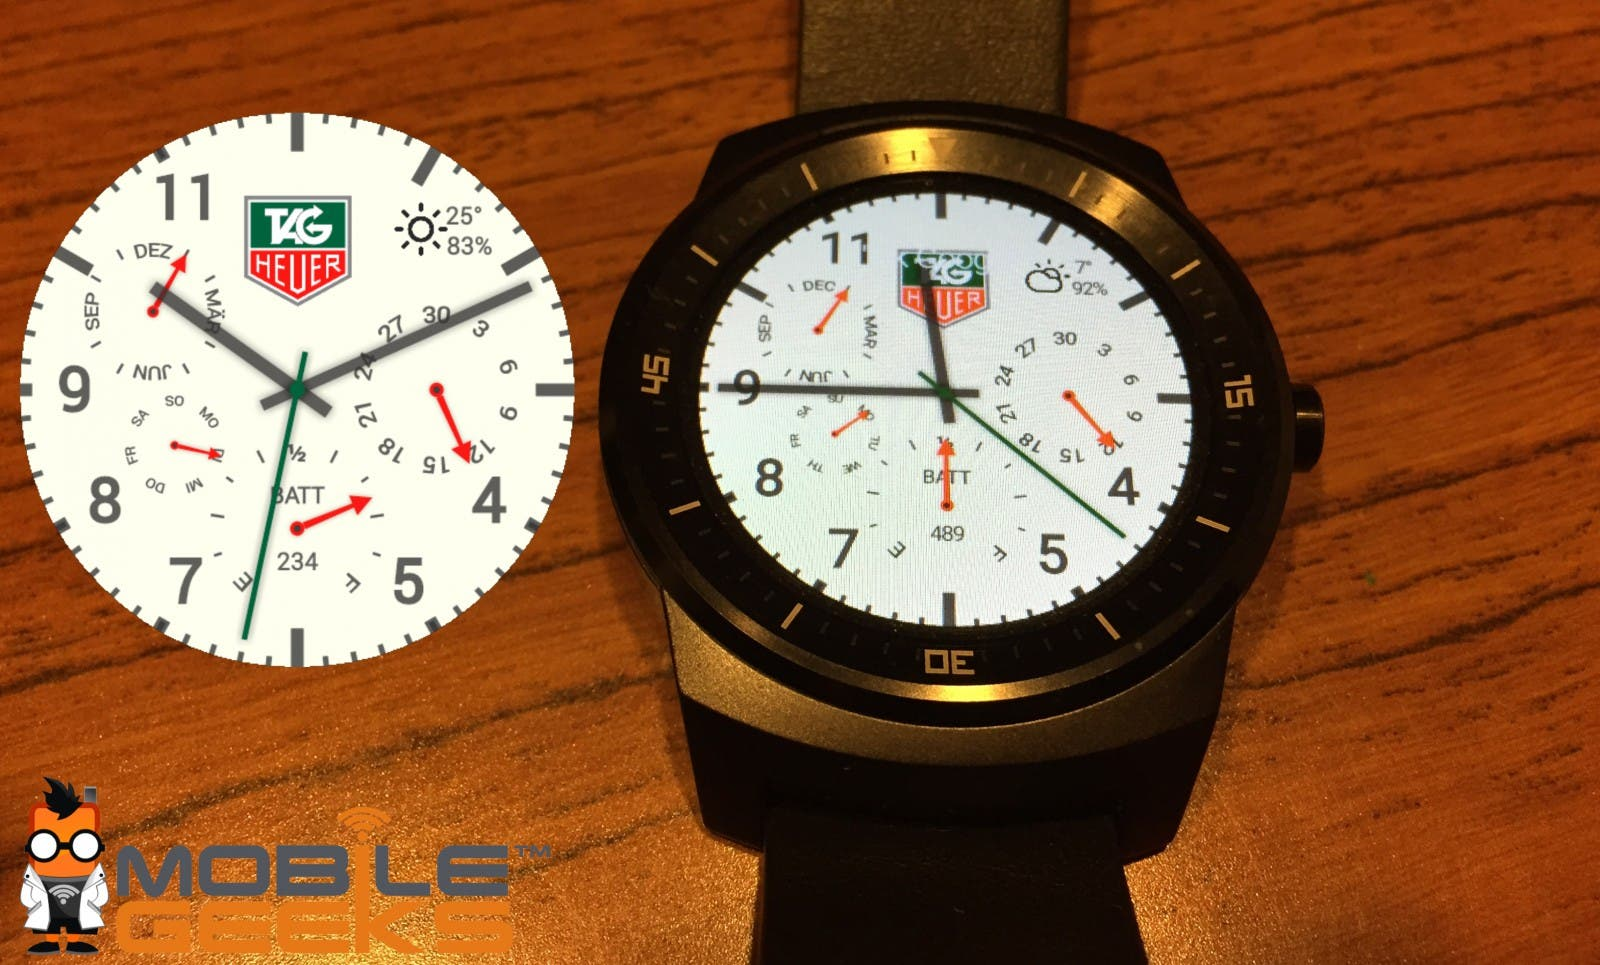 Die schoensten Watchfaces fuer runde Android Wear